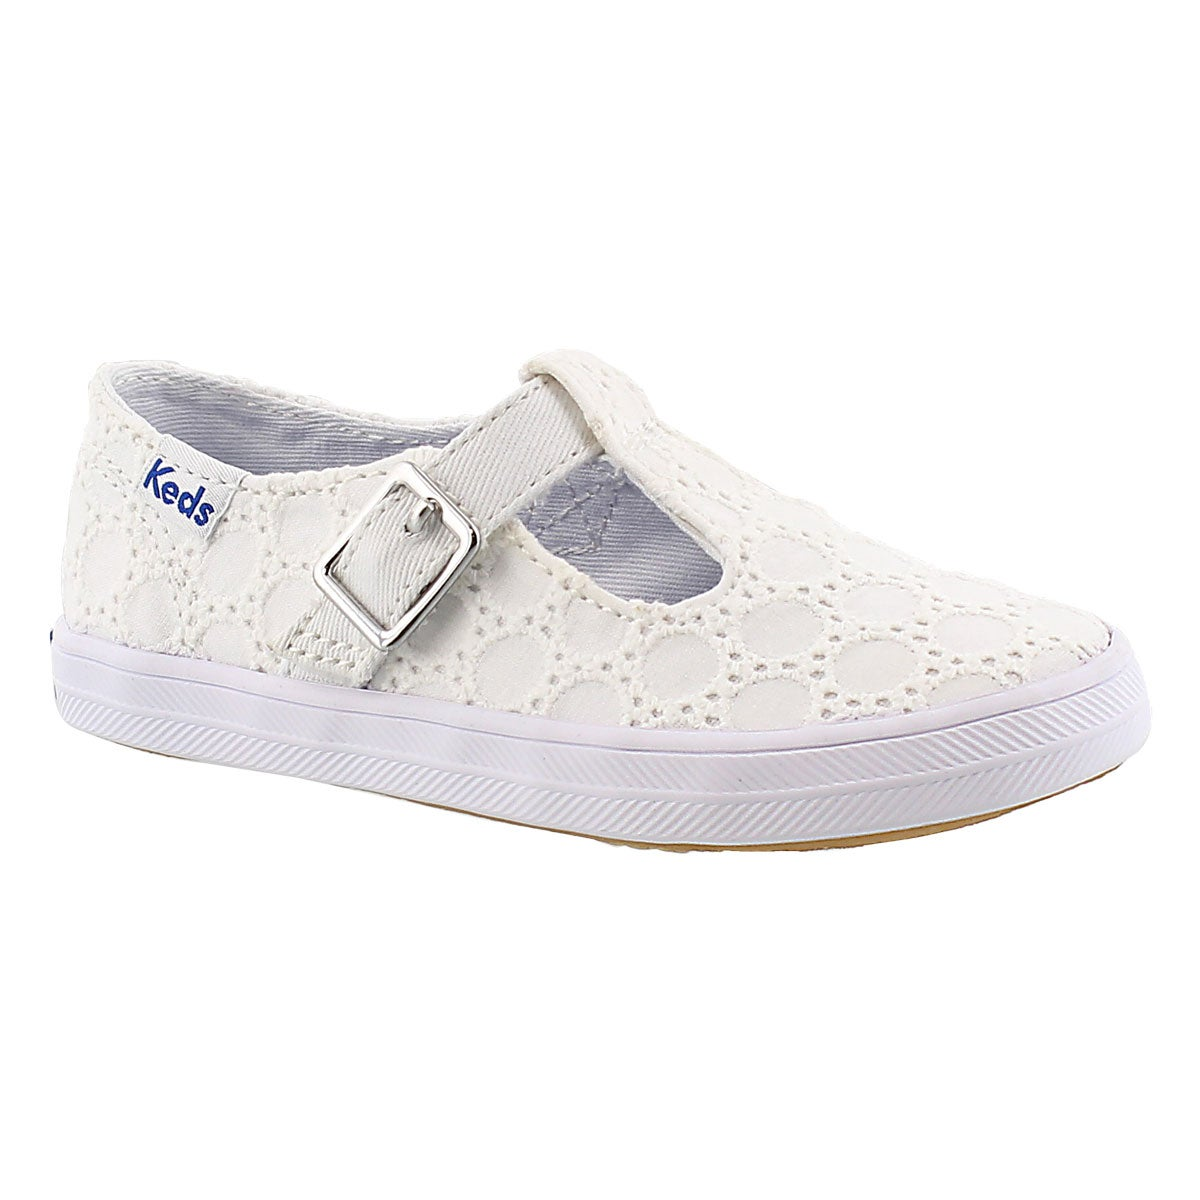 Girls' T-STRAPPY white casual sneakers